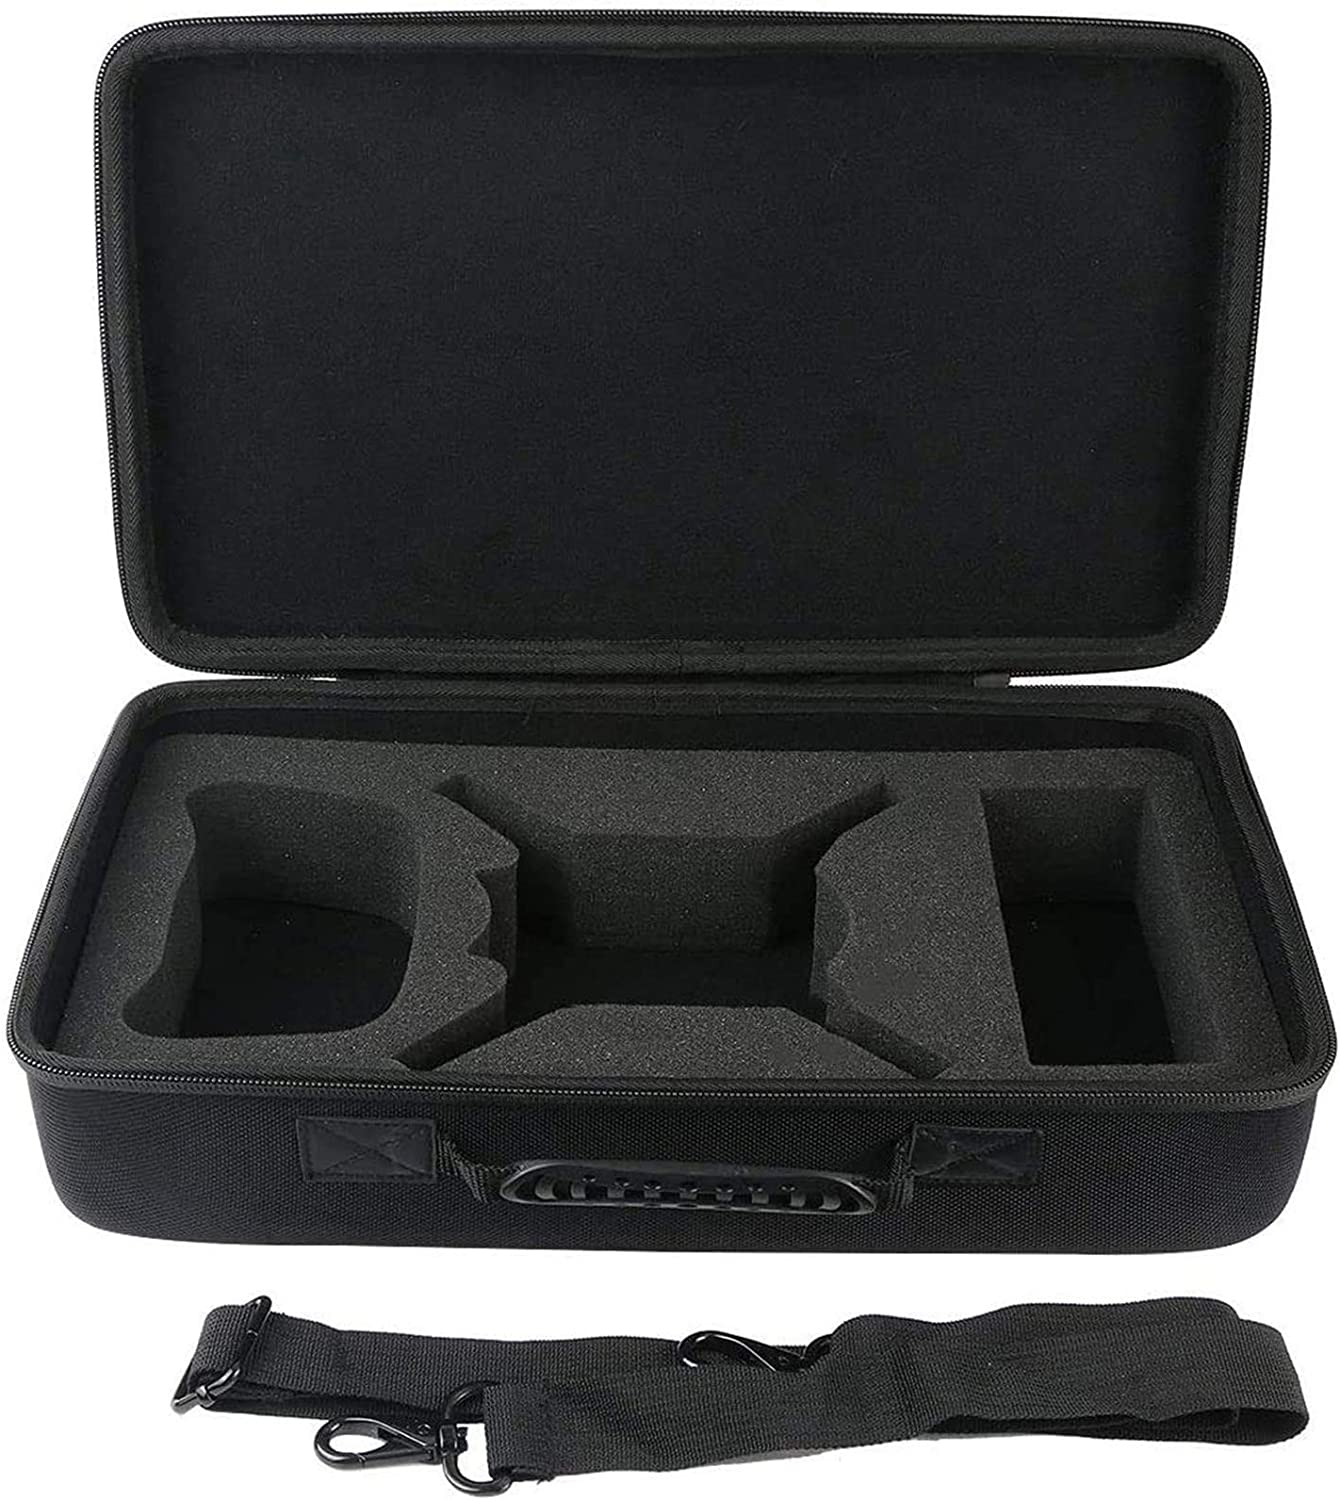 Khanka Hard Travel Case Replacement for FPV Free Shipping New SNAPTAIN S5C WiFi Elegant Dr